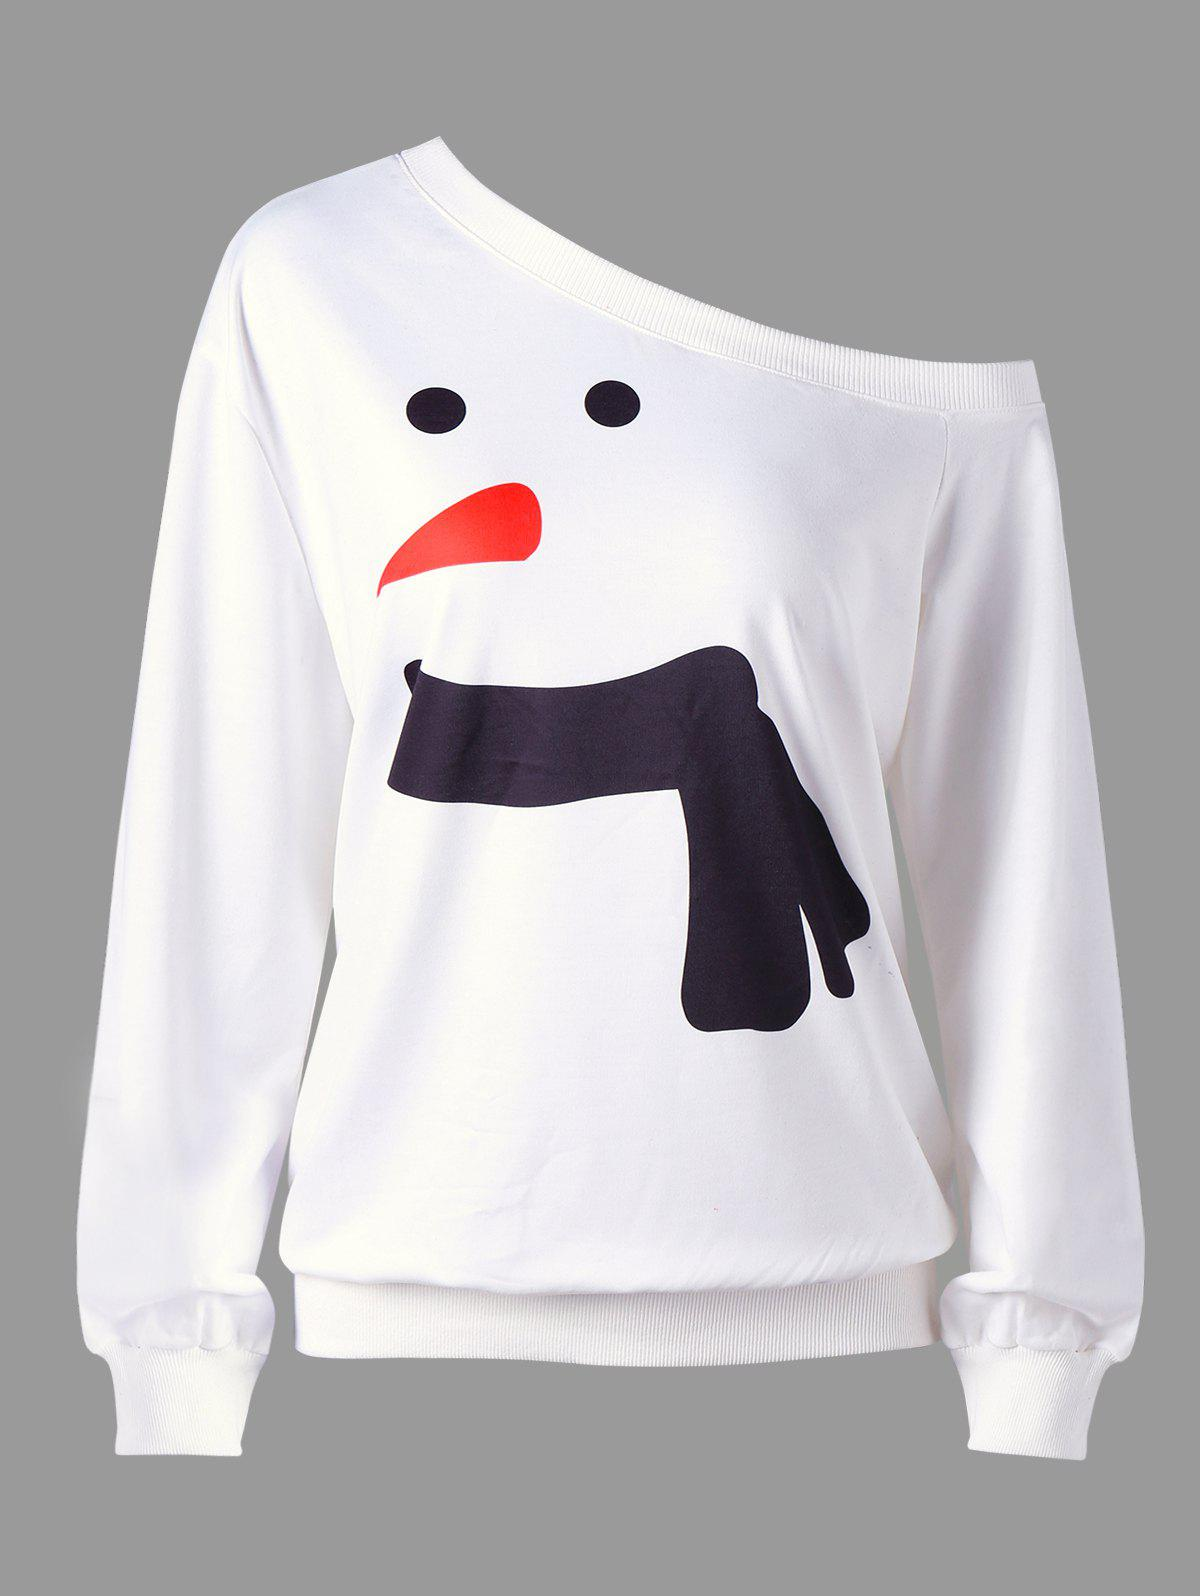 Plus Size Snowman Skew Collar Christmas SweatshirtWOMEN<br><br>Size: 5XL; Color: WHITE; Material: Polyester,Spandex; Shirt Length: Long; Sleeve Length: Full; Style: Casual; Pattern Style: Others; Season: Fall,Spring; Weight: 0.4000kg; Package Contents: 1 x Sweatshirt;